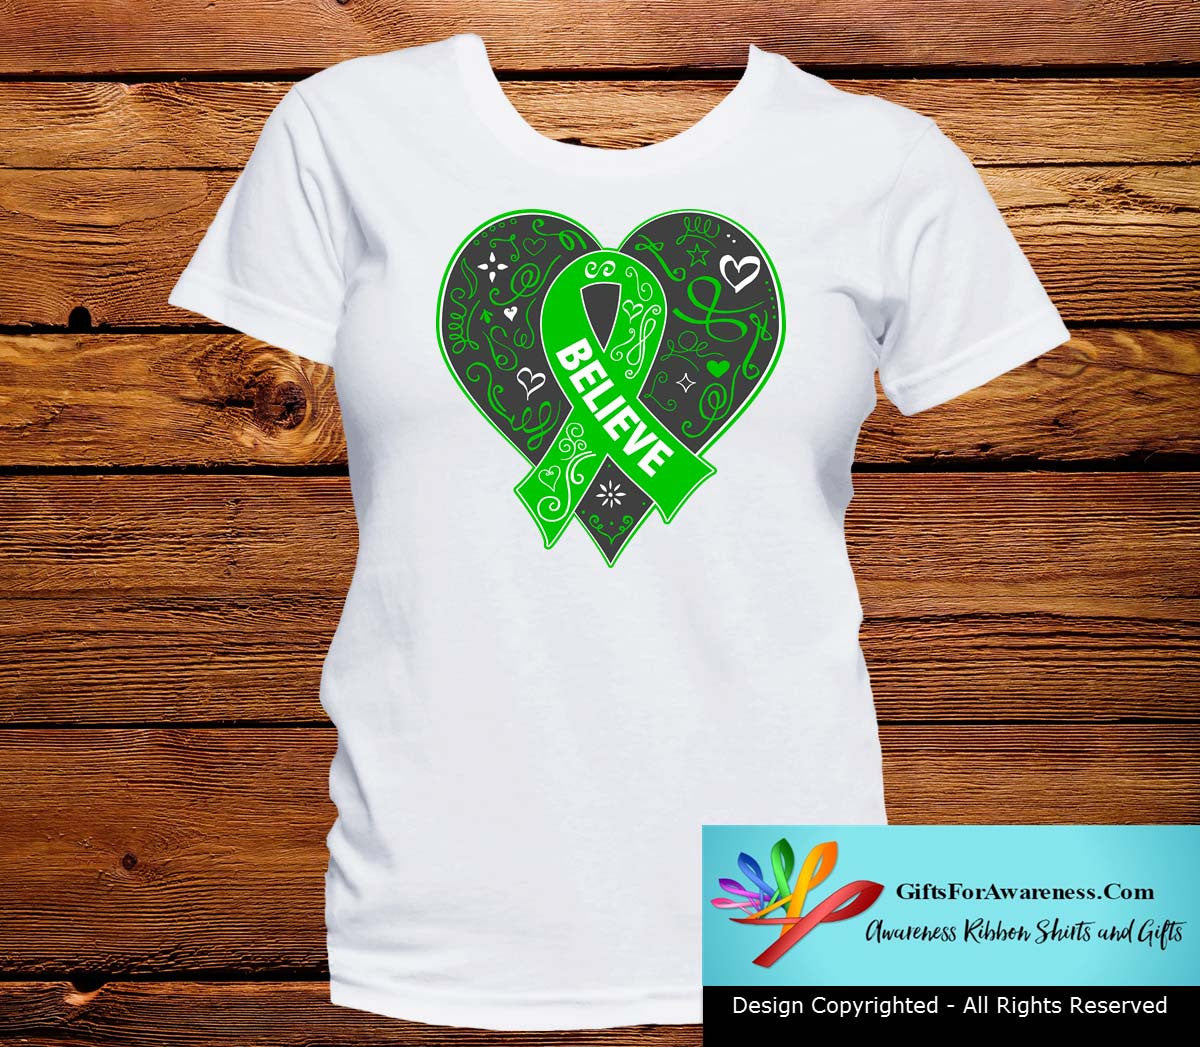 Spinal Cord Injury Believe Heart Ribbon Shirts - GiftsForAwareness